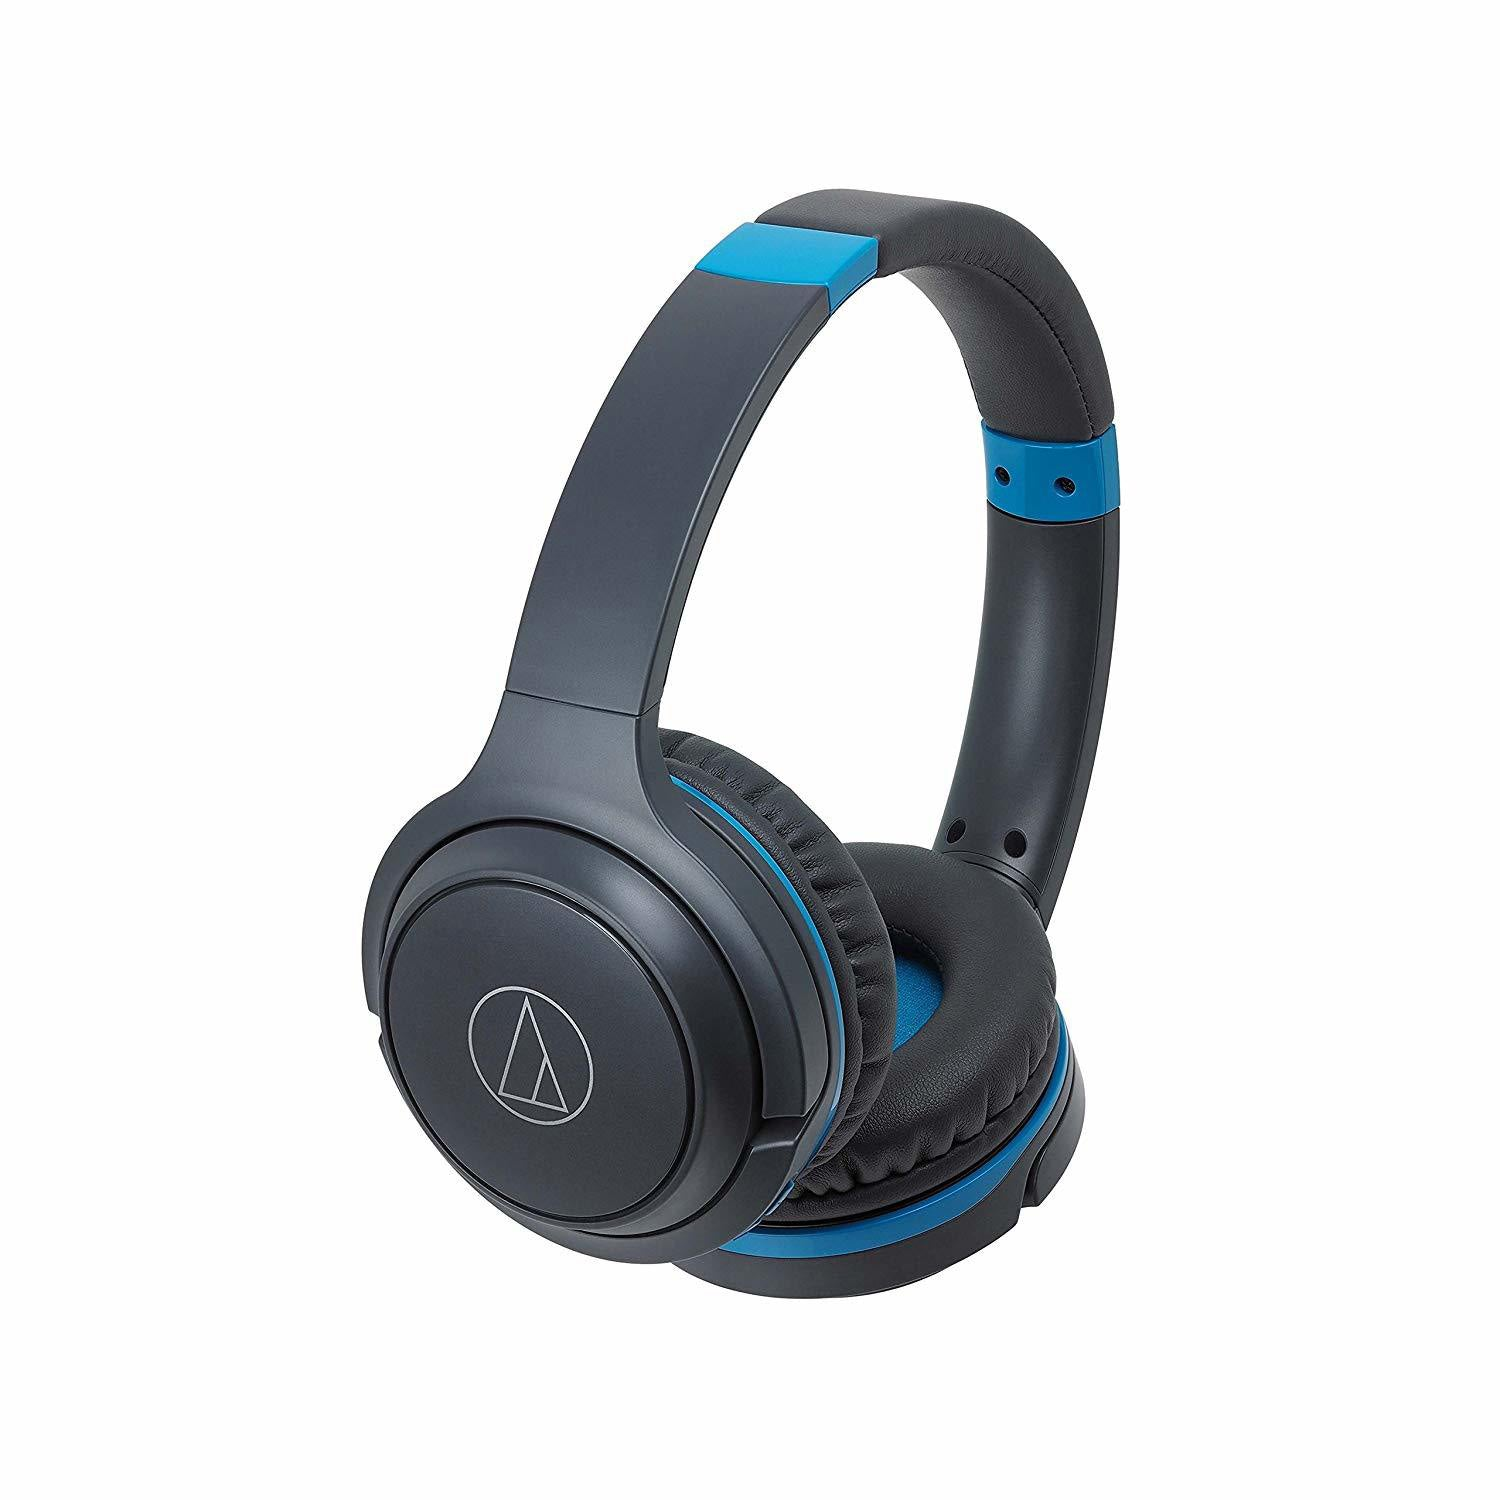 Audio-Technica ATH-S200BT Bluetooth Wireless On-Ear Headphones with Built-In Mic & Controls